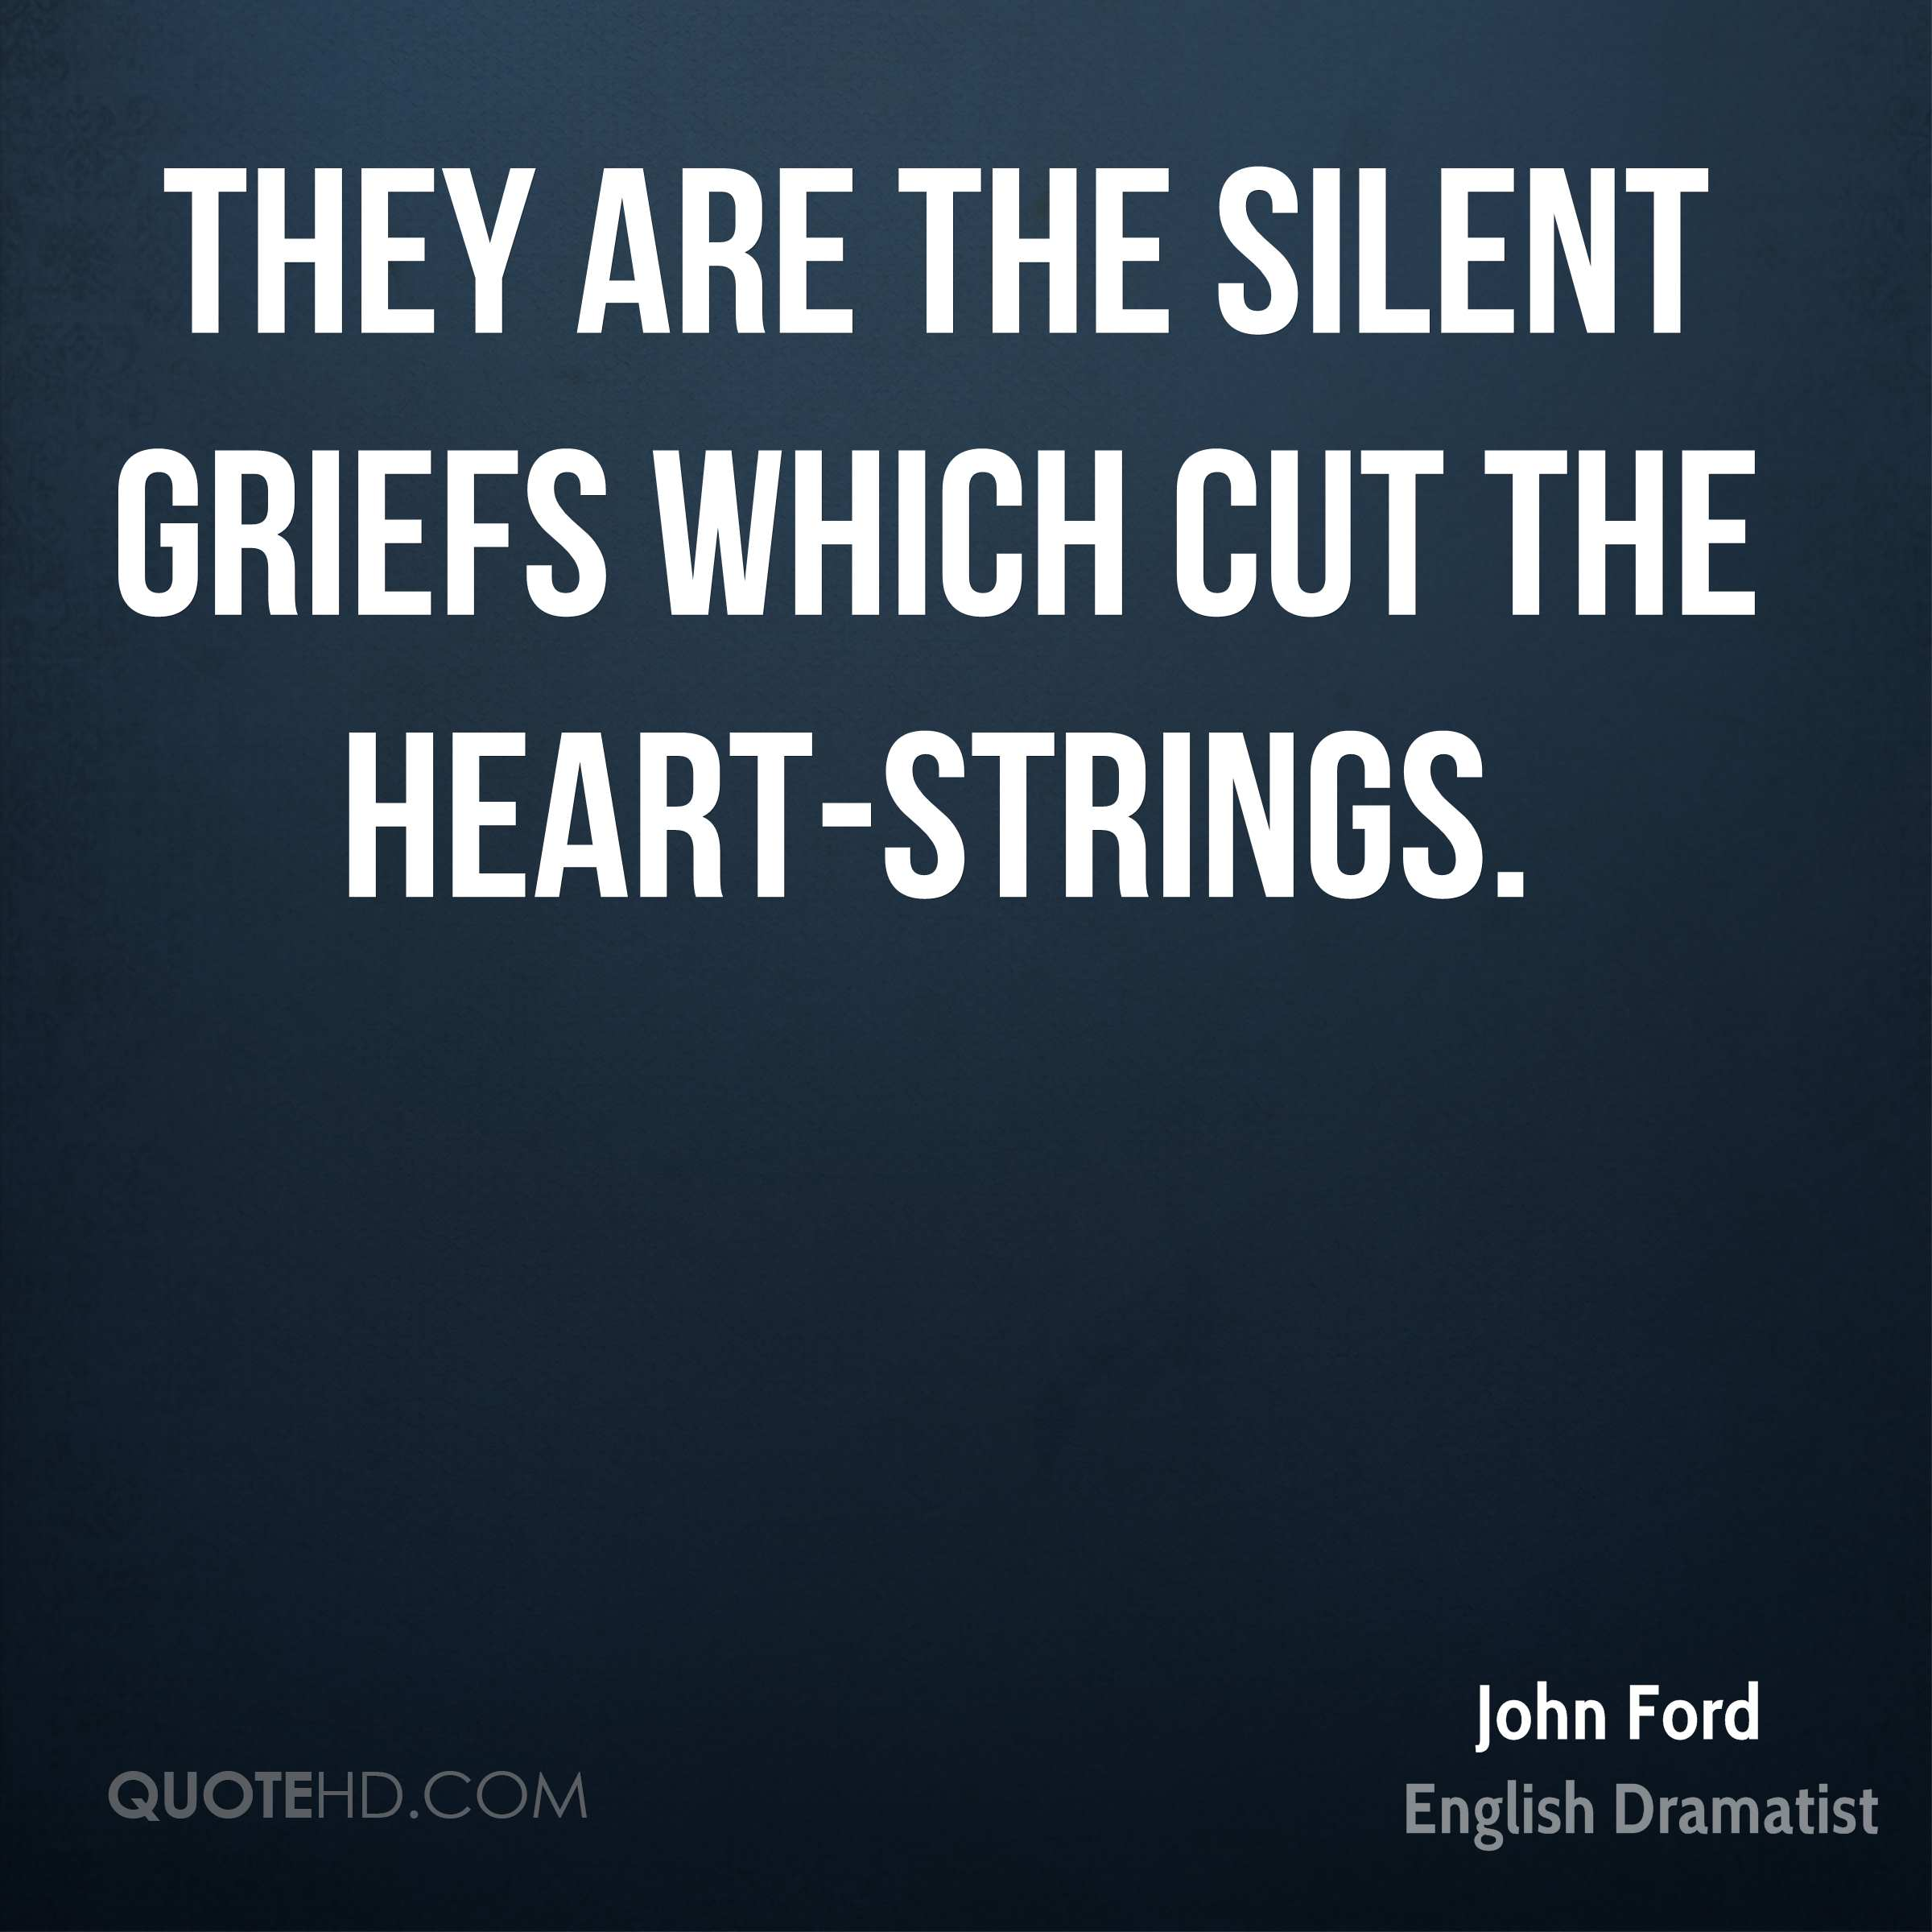 They are the silent griefs which cut the heart-strings.